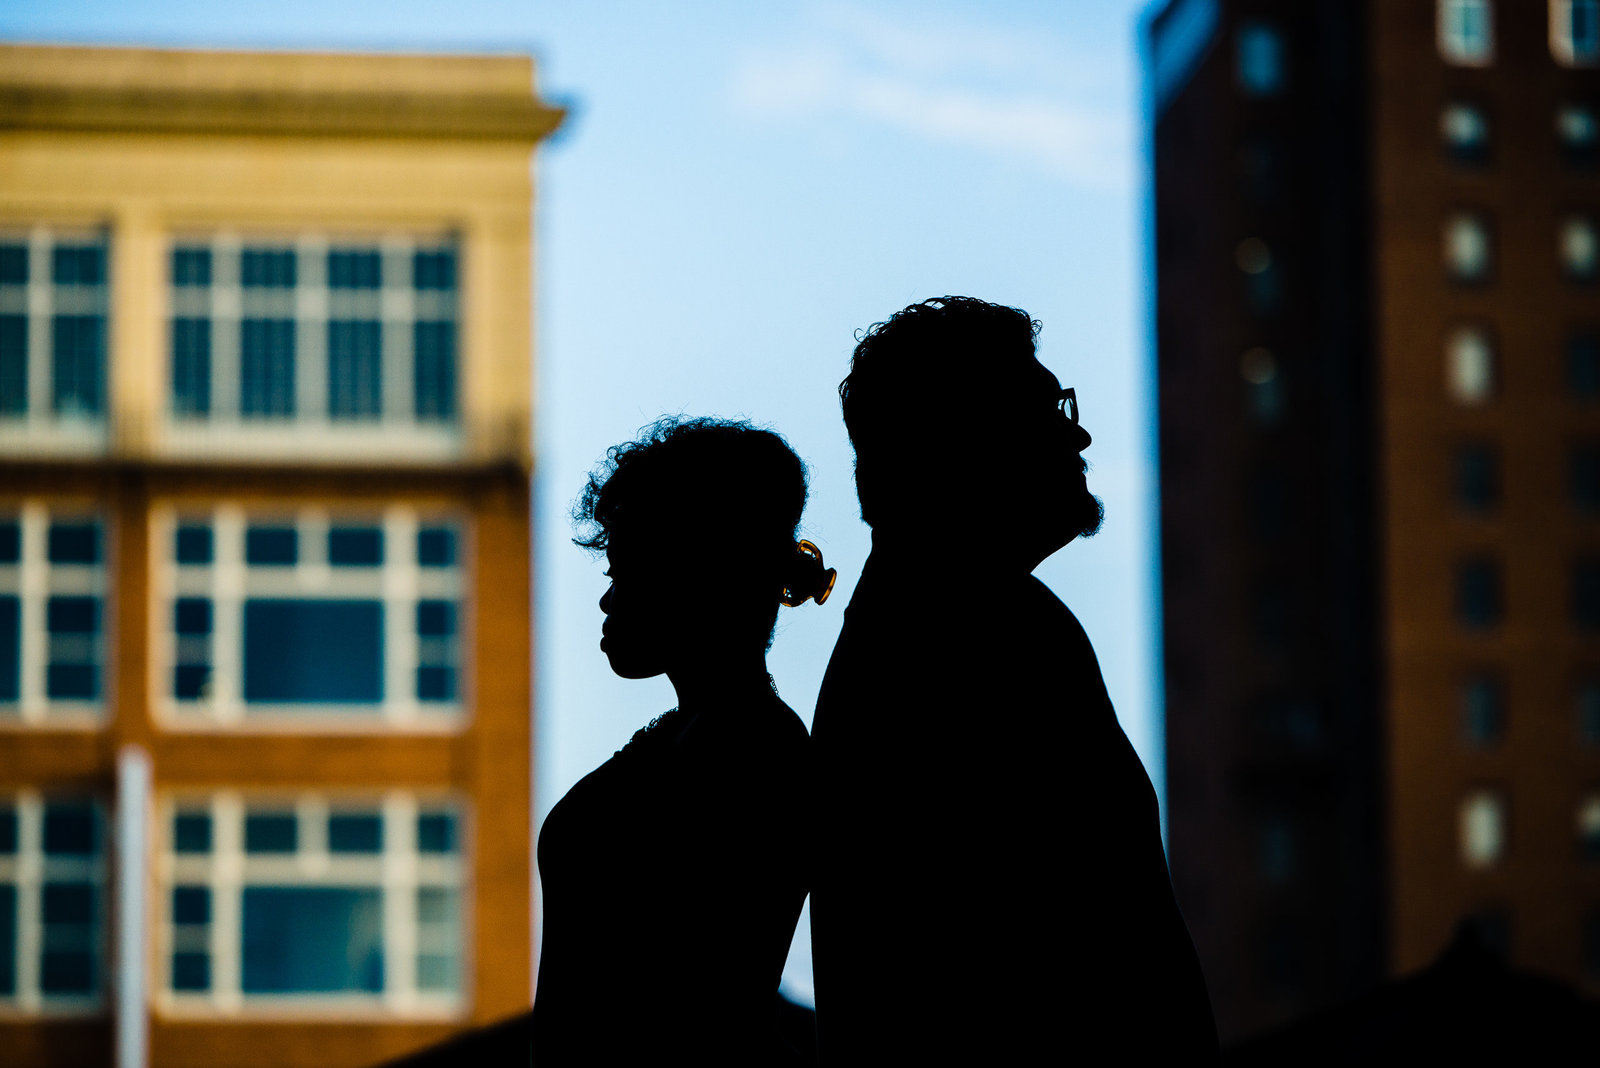 Downtown-Huntington-WV-Engagement-Photos